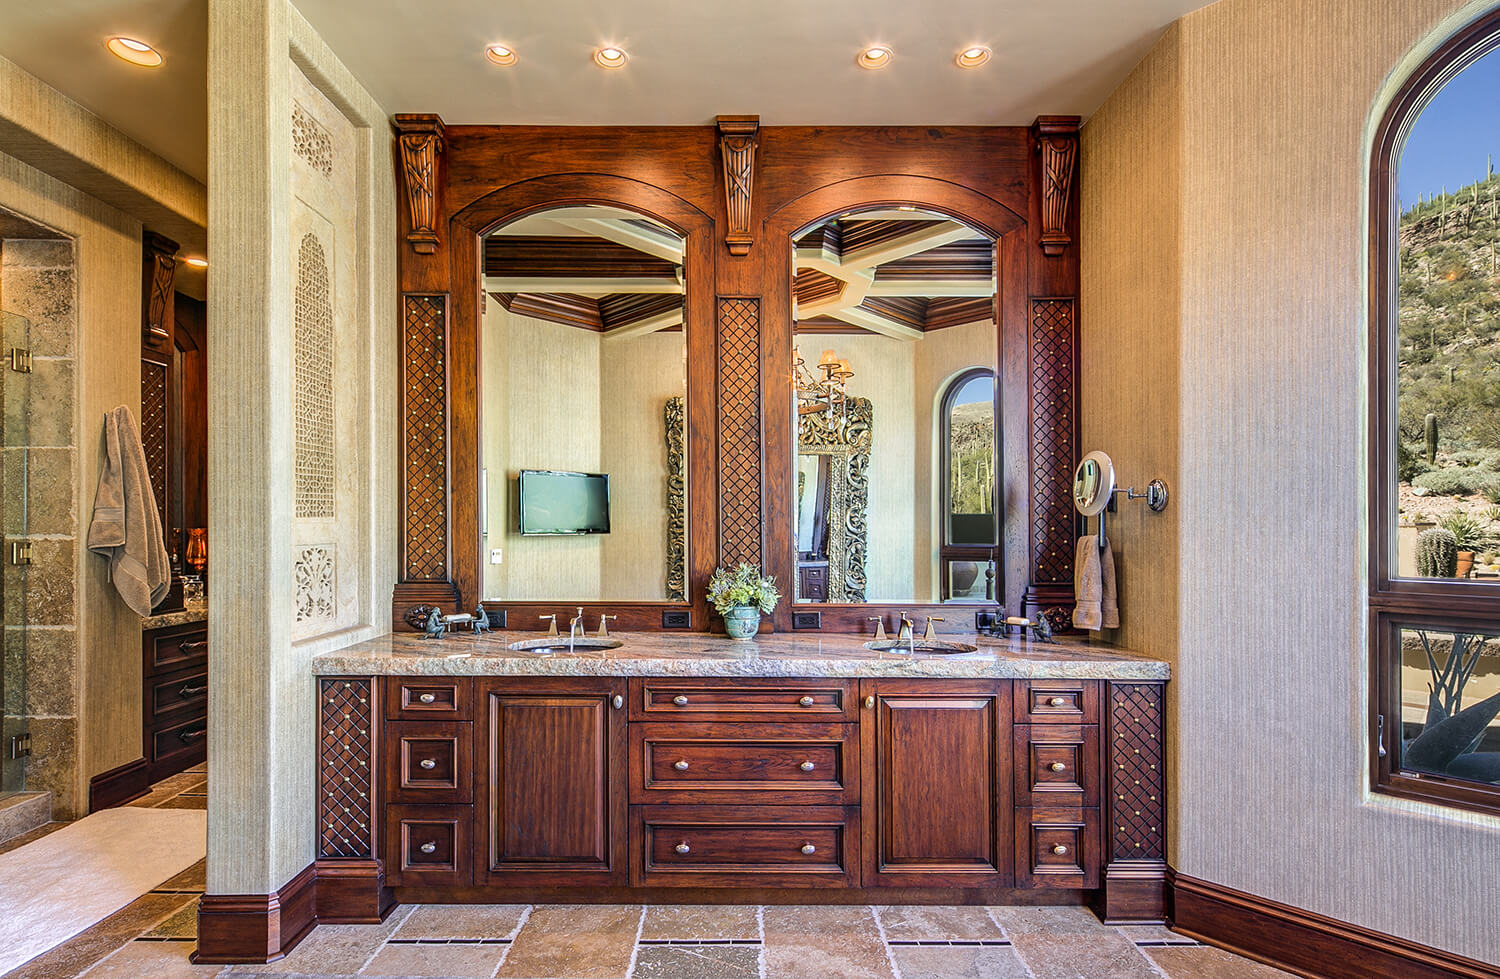 Kitchen And Bathroom Remodeling Tucson Az